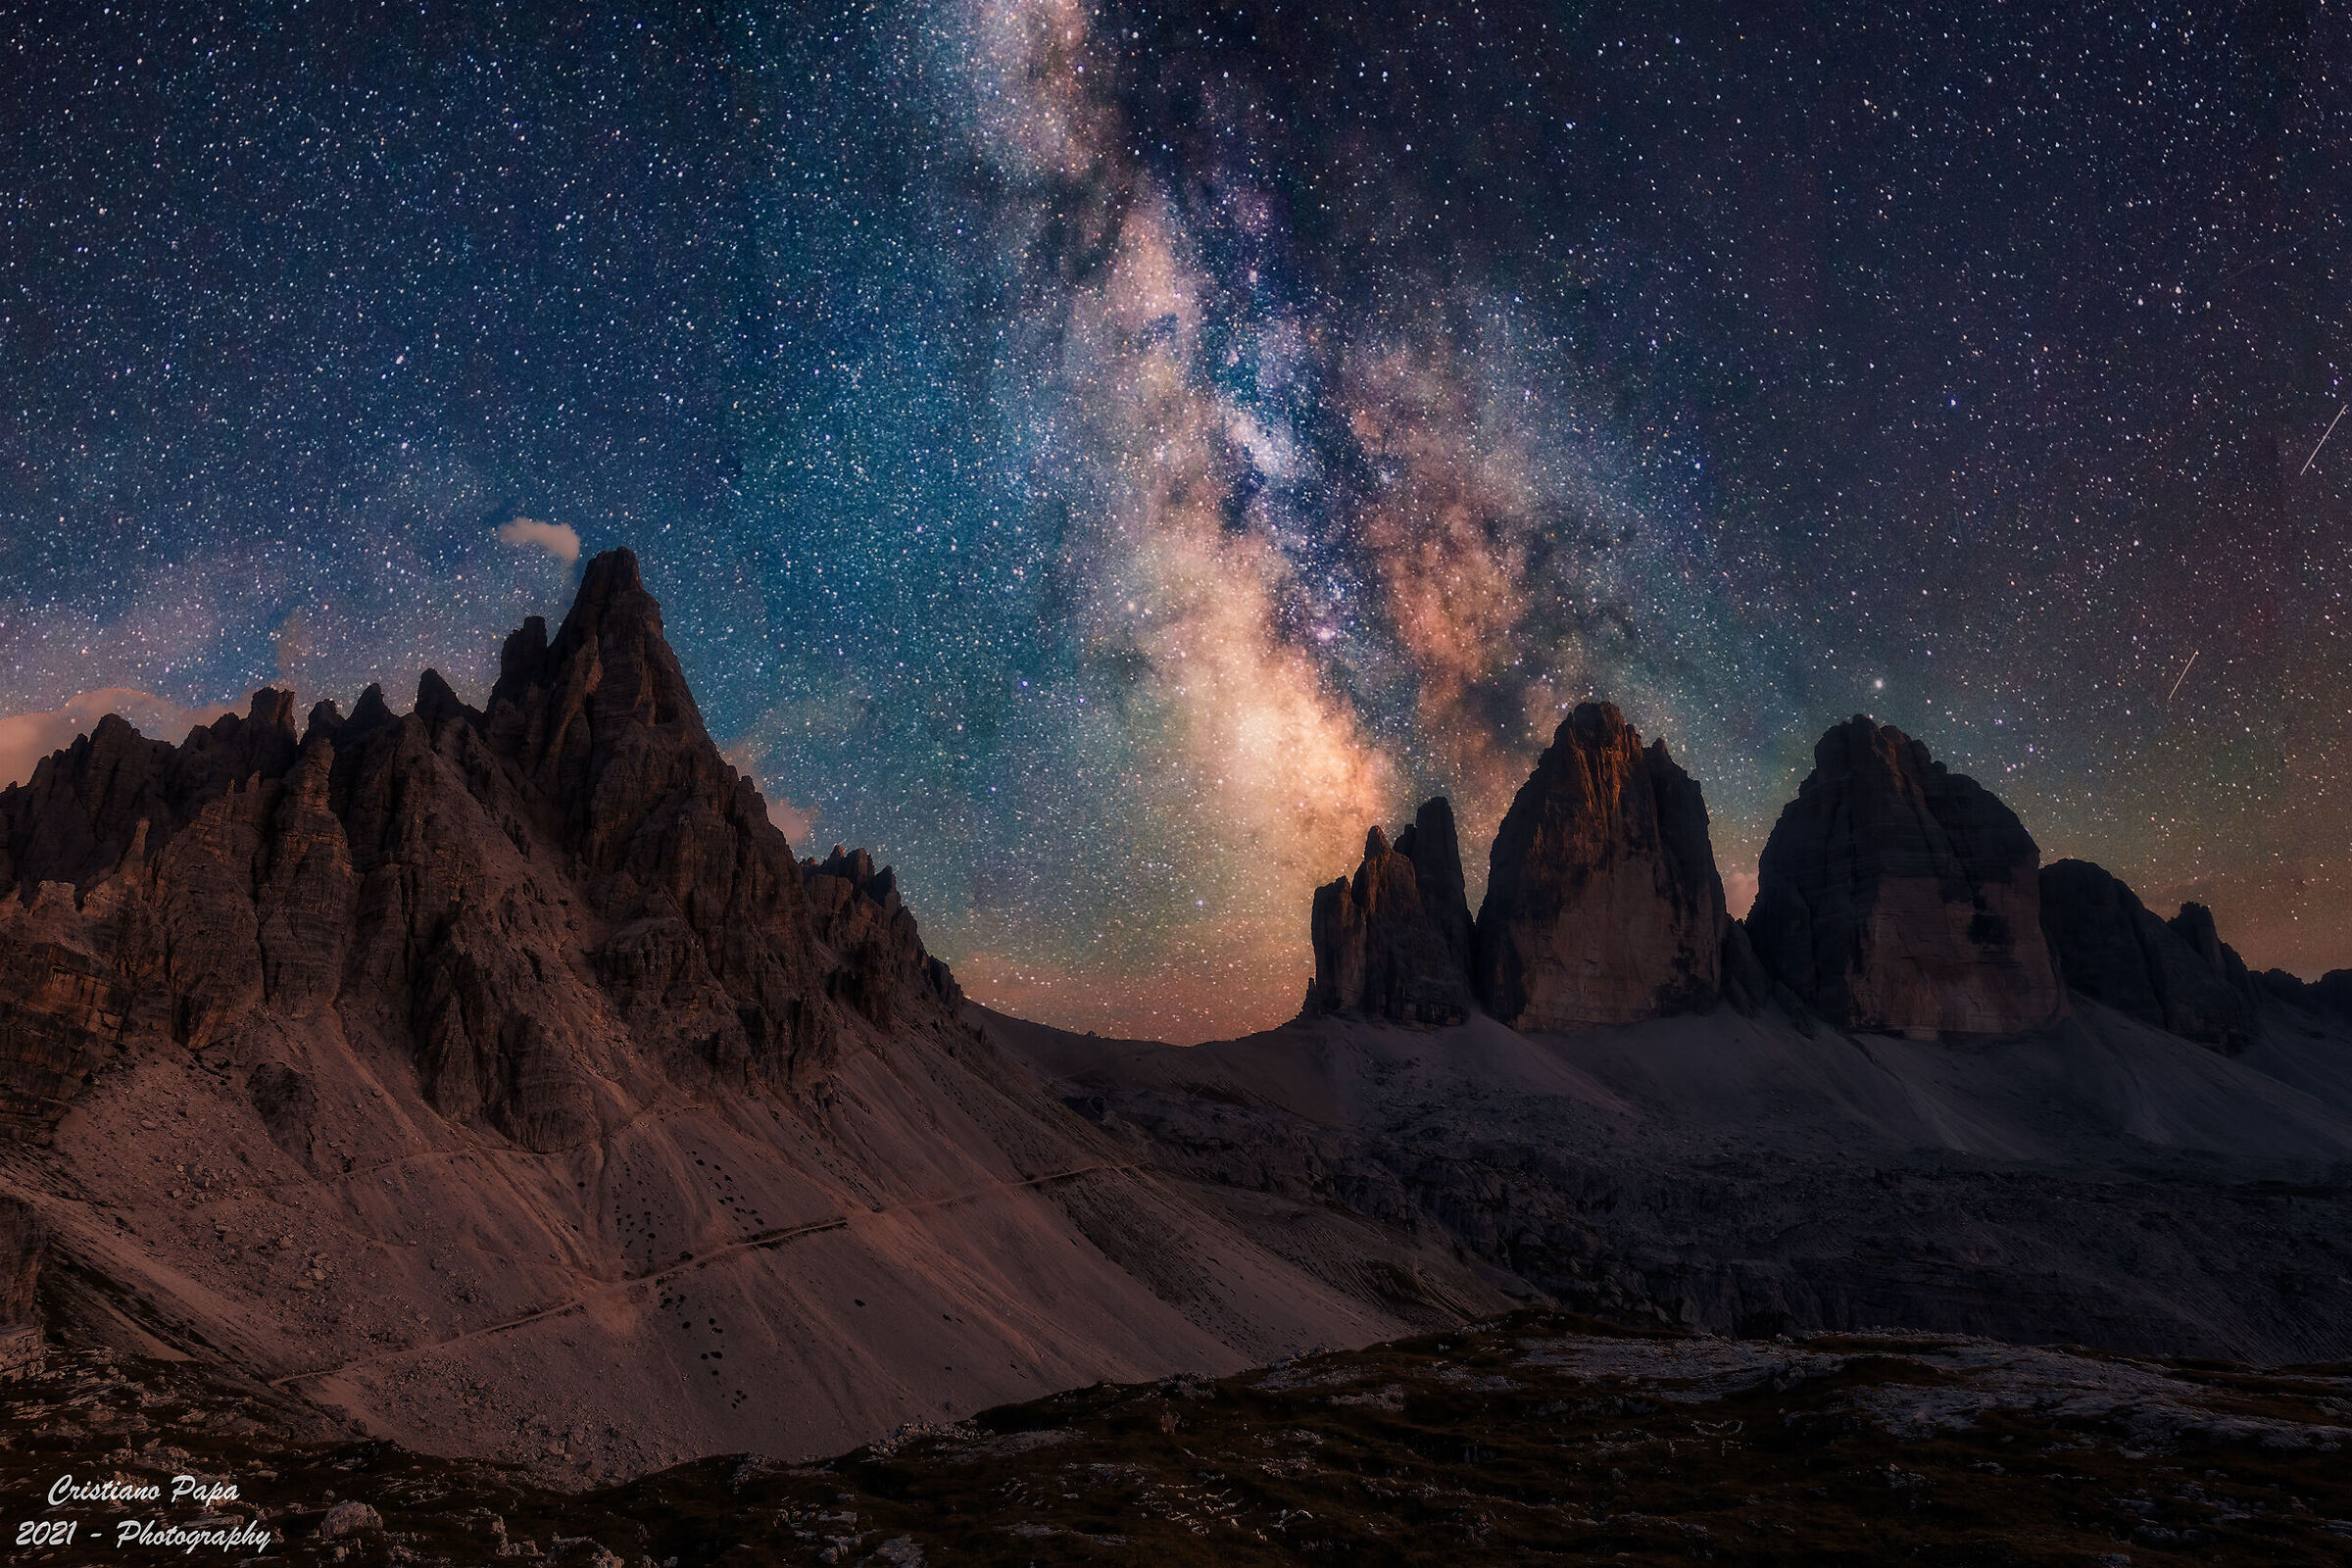 The 3 peaks and the Milky Way...